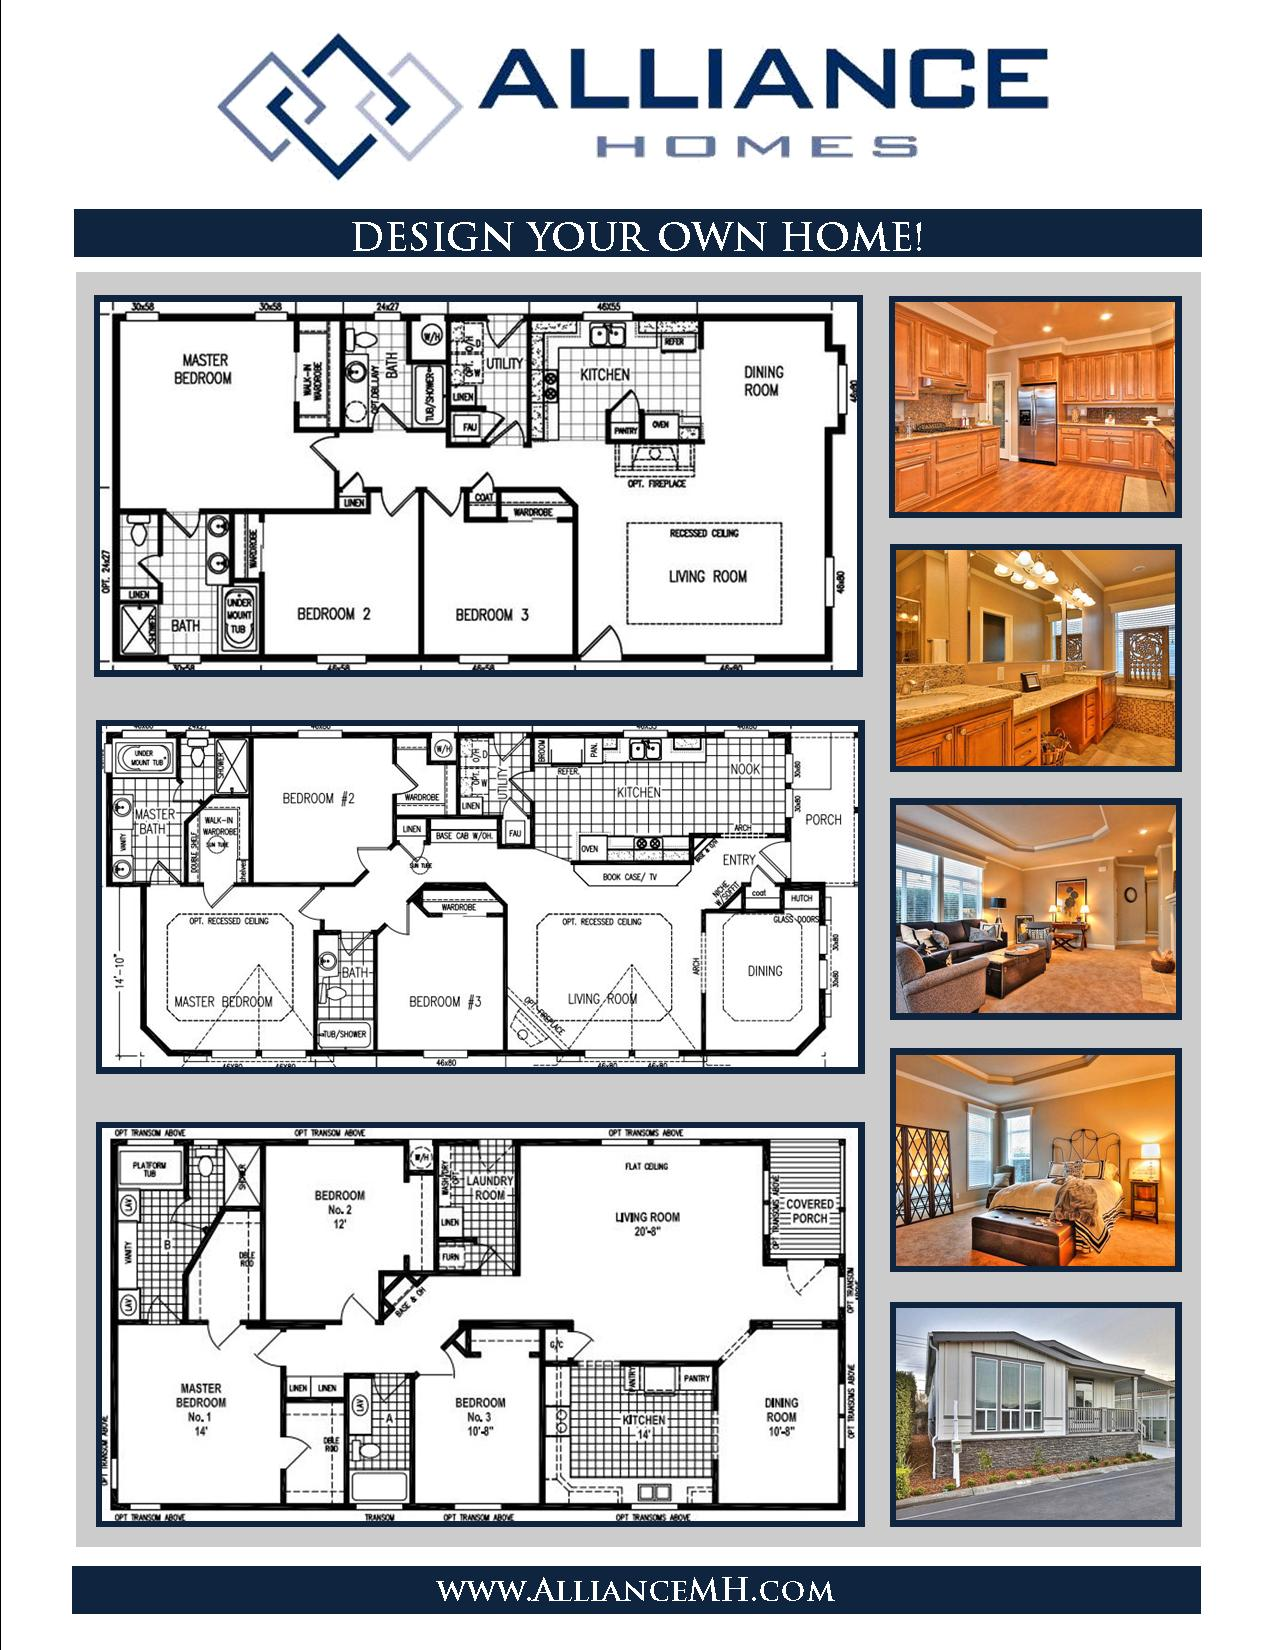 Design your own home alliance manufactured homes Design own home